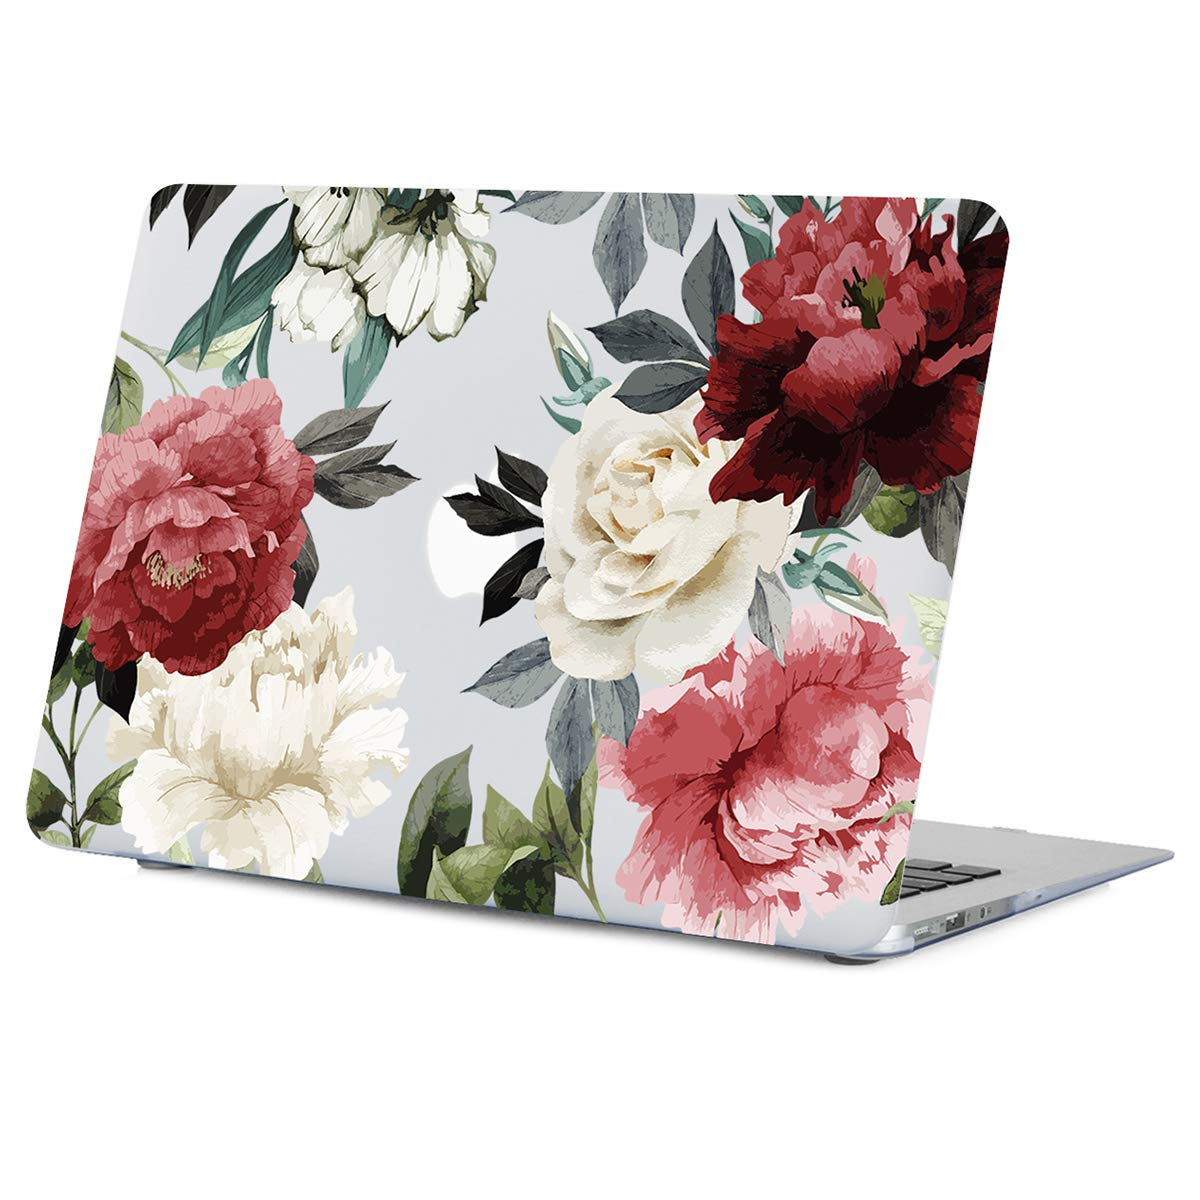 MacBook Air 13.3 Inch Case Old Version, Vintage Peony Flower MacBook Air 13.3 inch Clear Case, Soft-Touch Hard Shell Case with Keyboard Cover Model:A1466 A1369 2010-2017